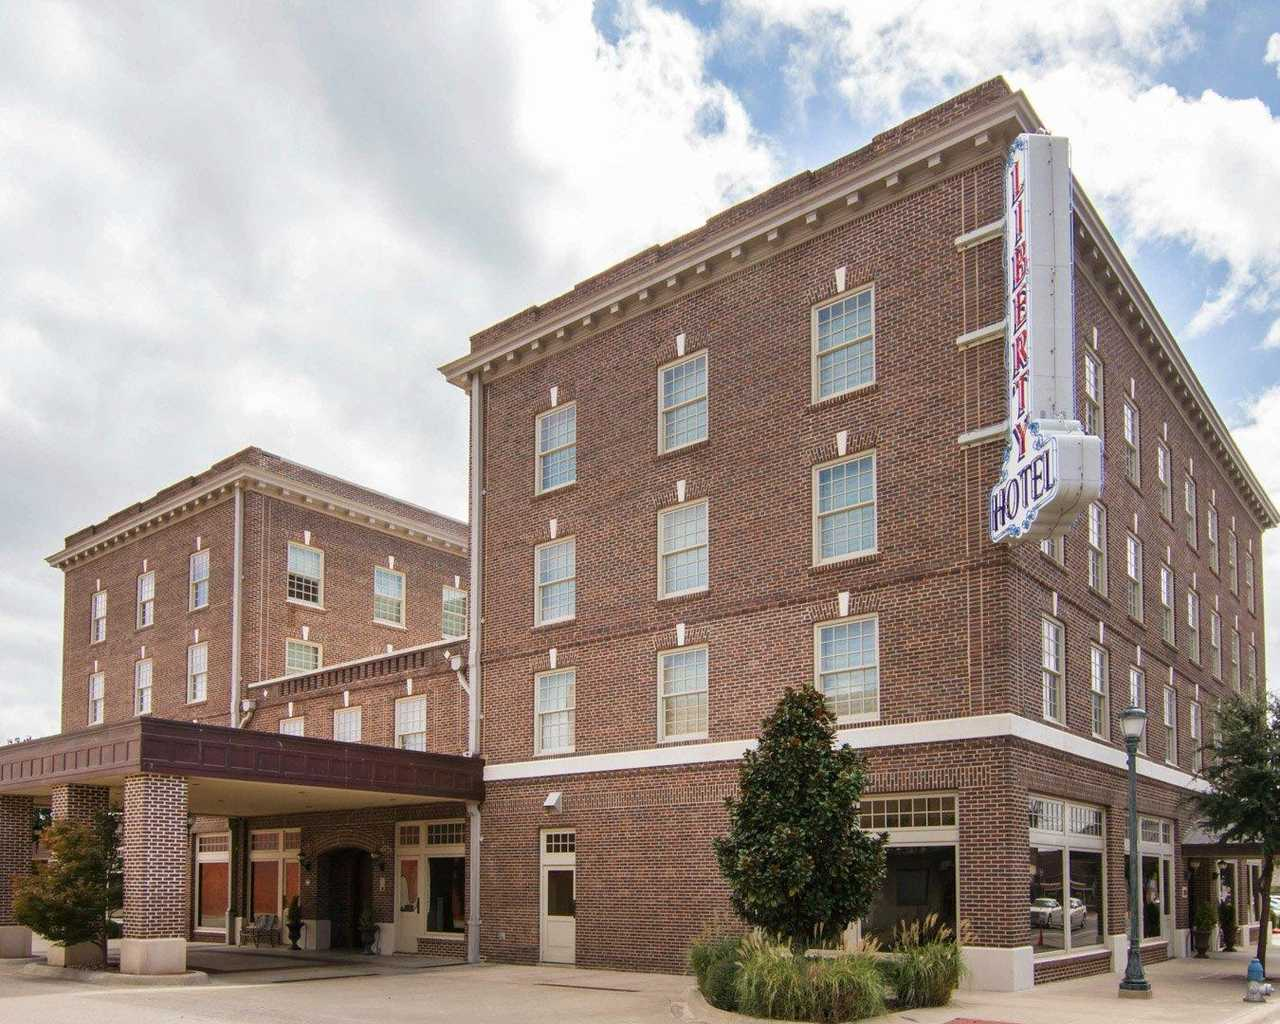 https://www.hotelsbyday.com/_data/default-hotel_image/1/9605/exterior1.jpg